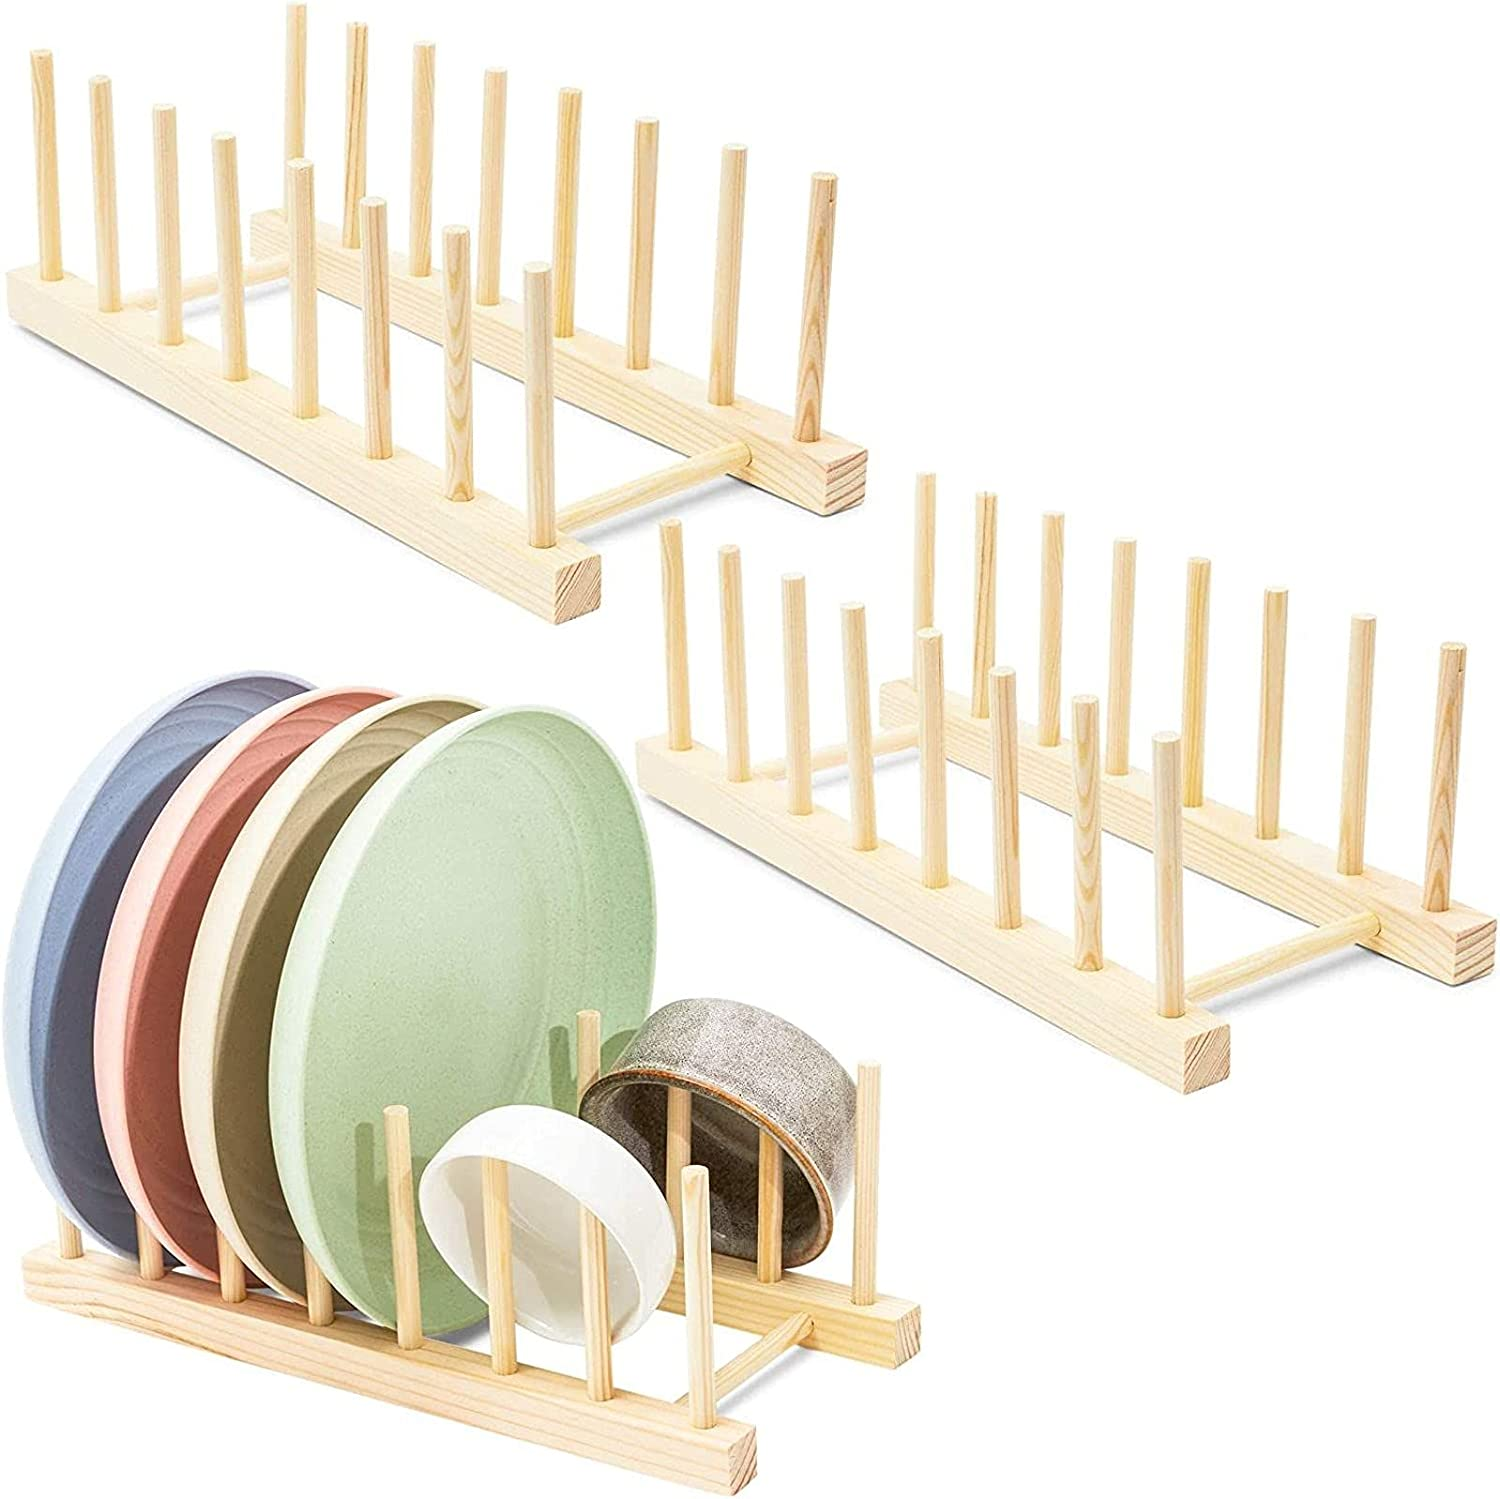 Wooden Plate Organizer and Houston Mall Dish 12.2 Bargain In Rack 3-Pack